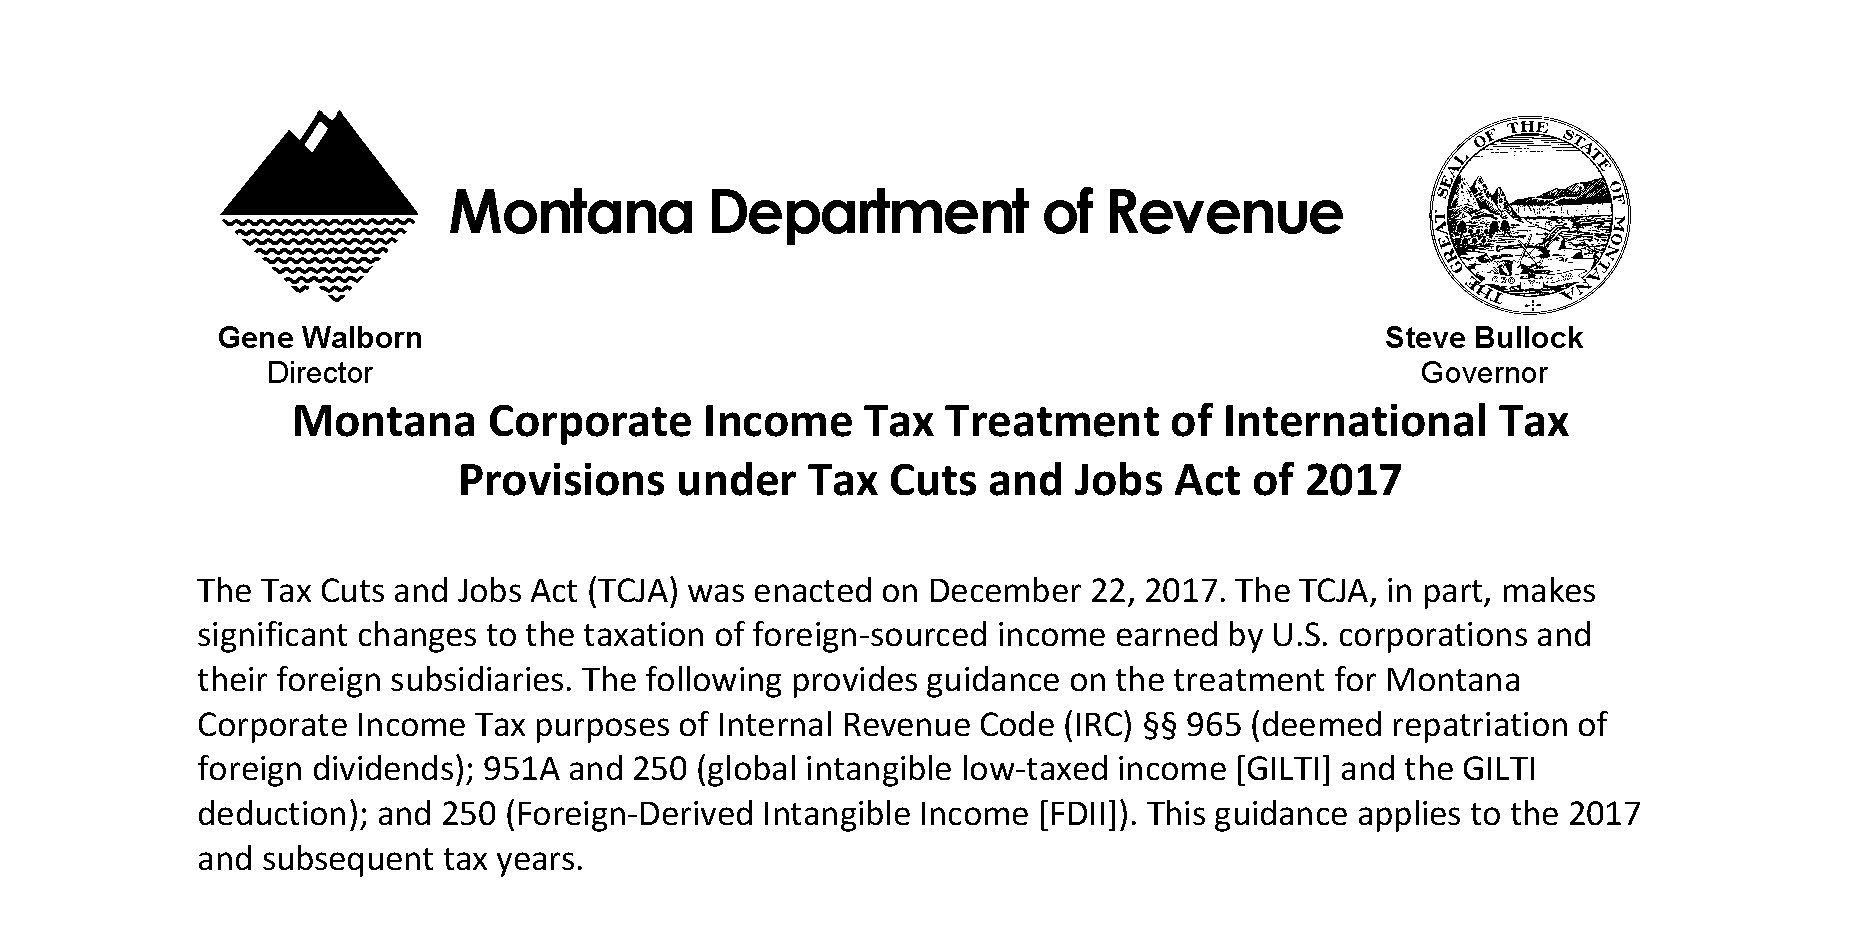 Montana Corporate Income Tax Treatment of International Tax Provisions under Tax Cuts and Jobs Act of 2017 Memo Preview Image